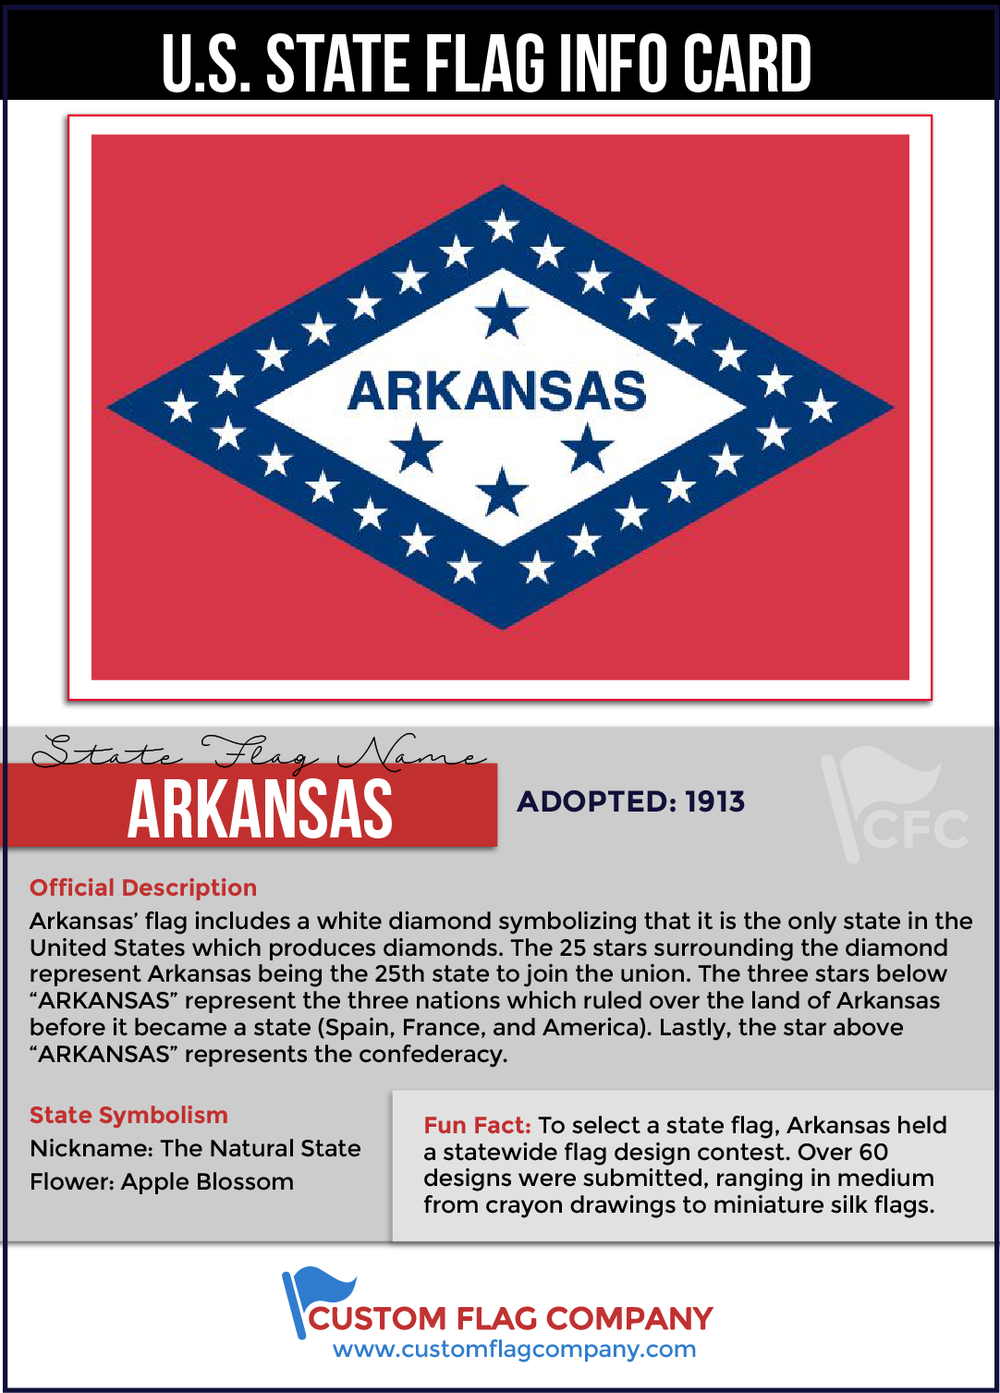 Arkansas State Flag Info Card